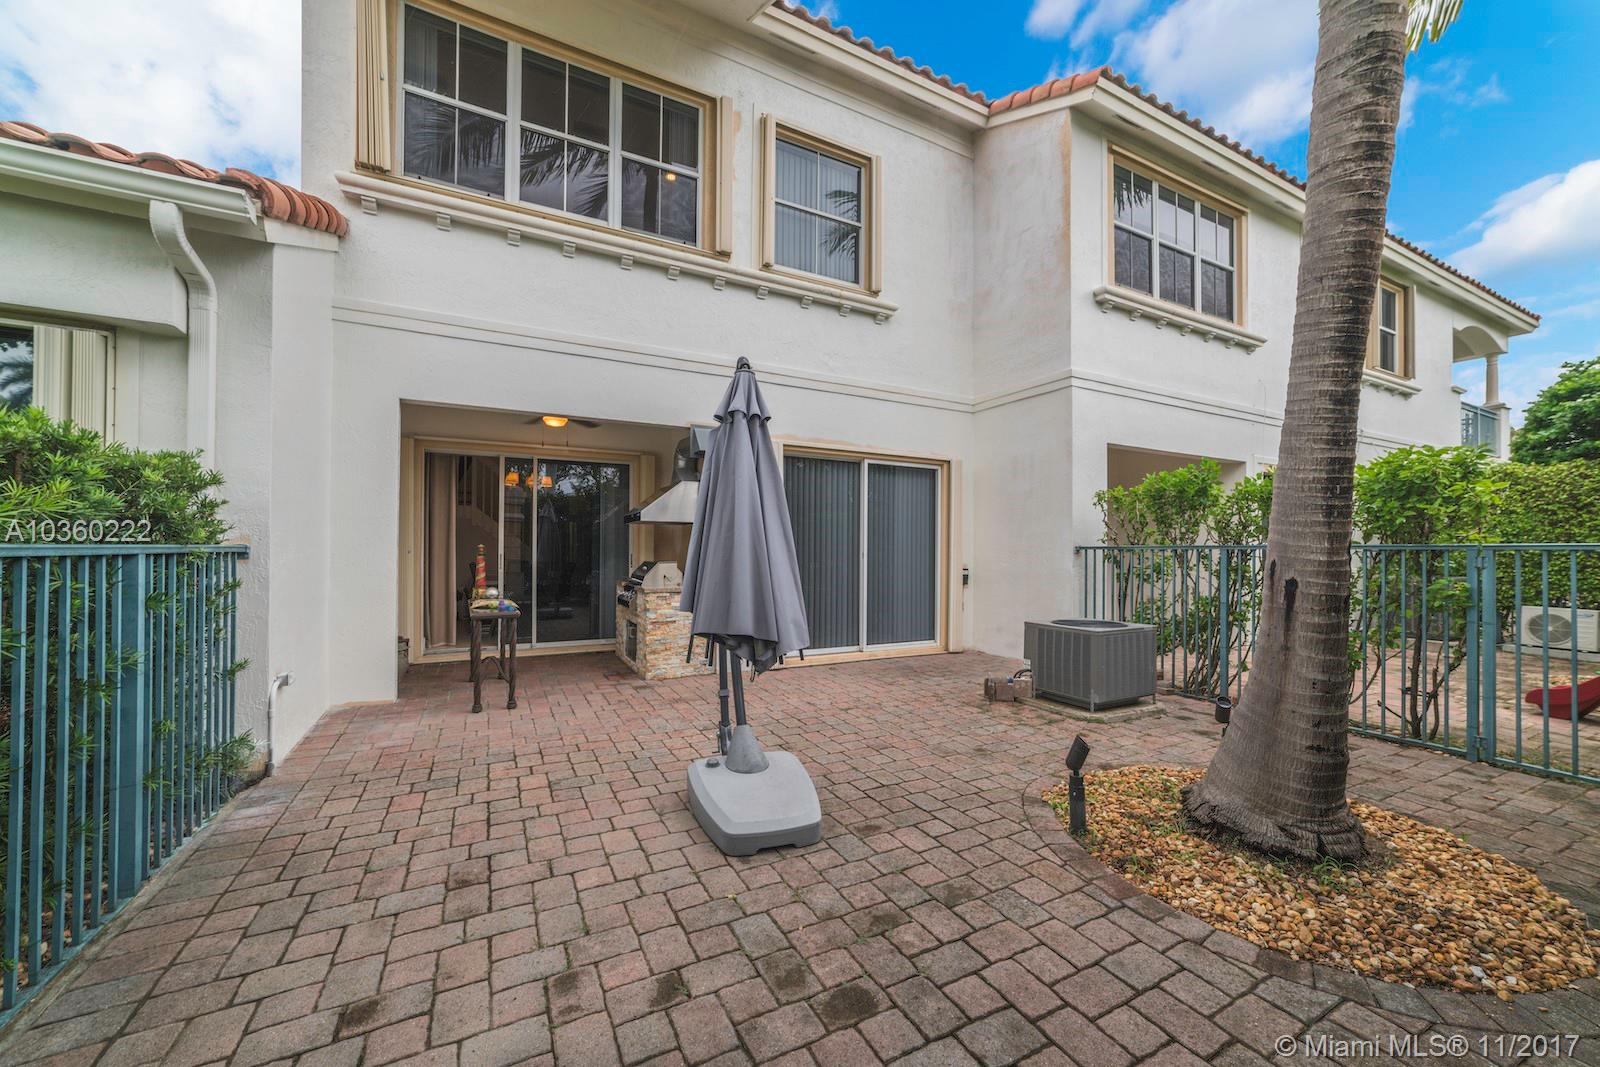 946 Harbor View S ##946, Hollywood FL, 33019